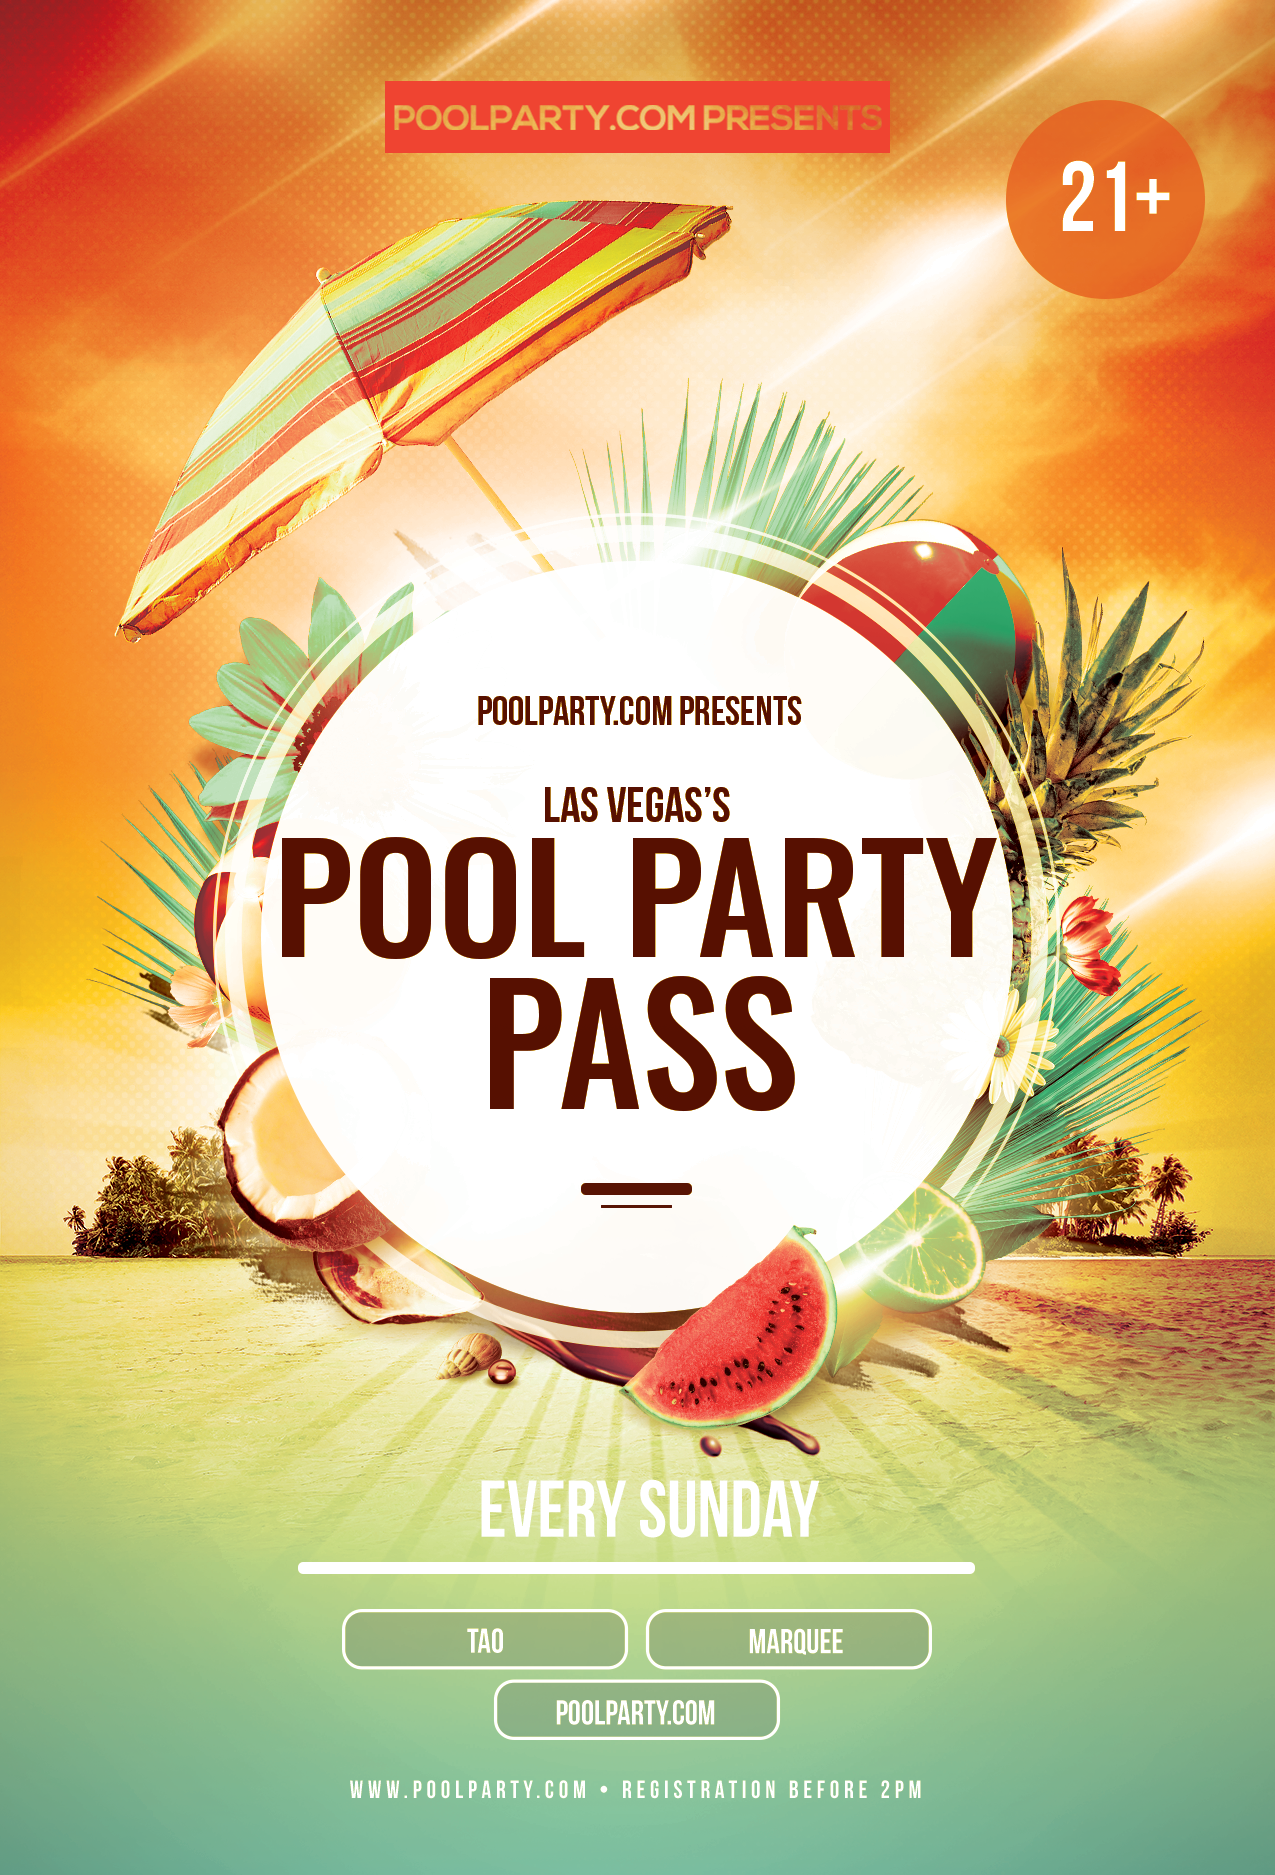 Sunday's Pool Party Pass (April 12th 2020)